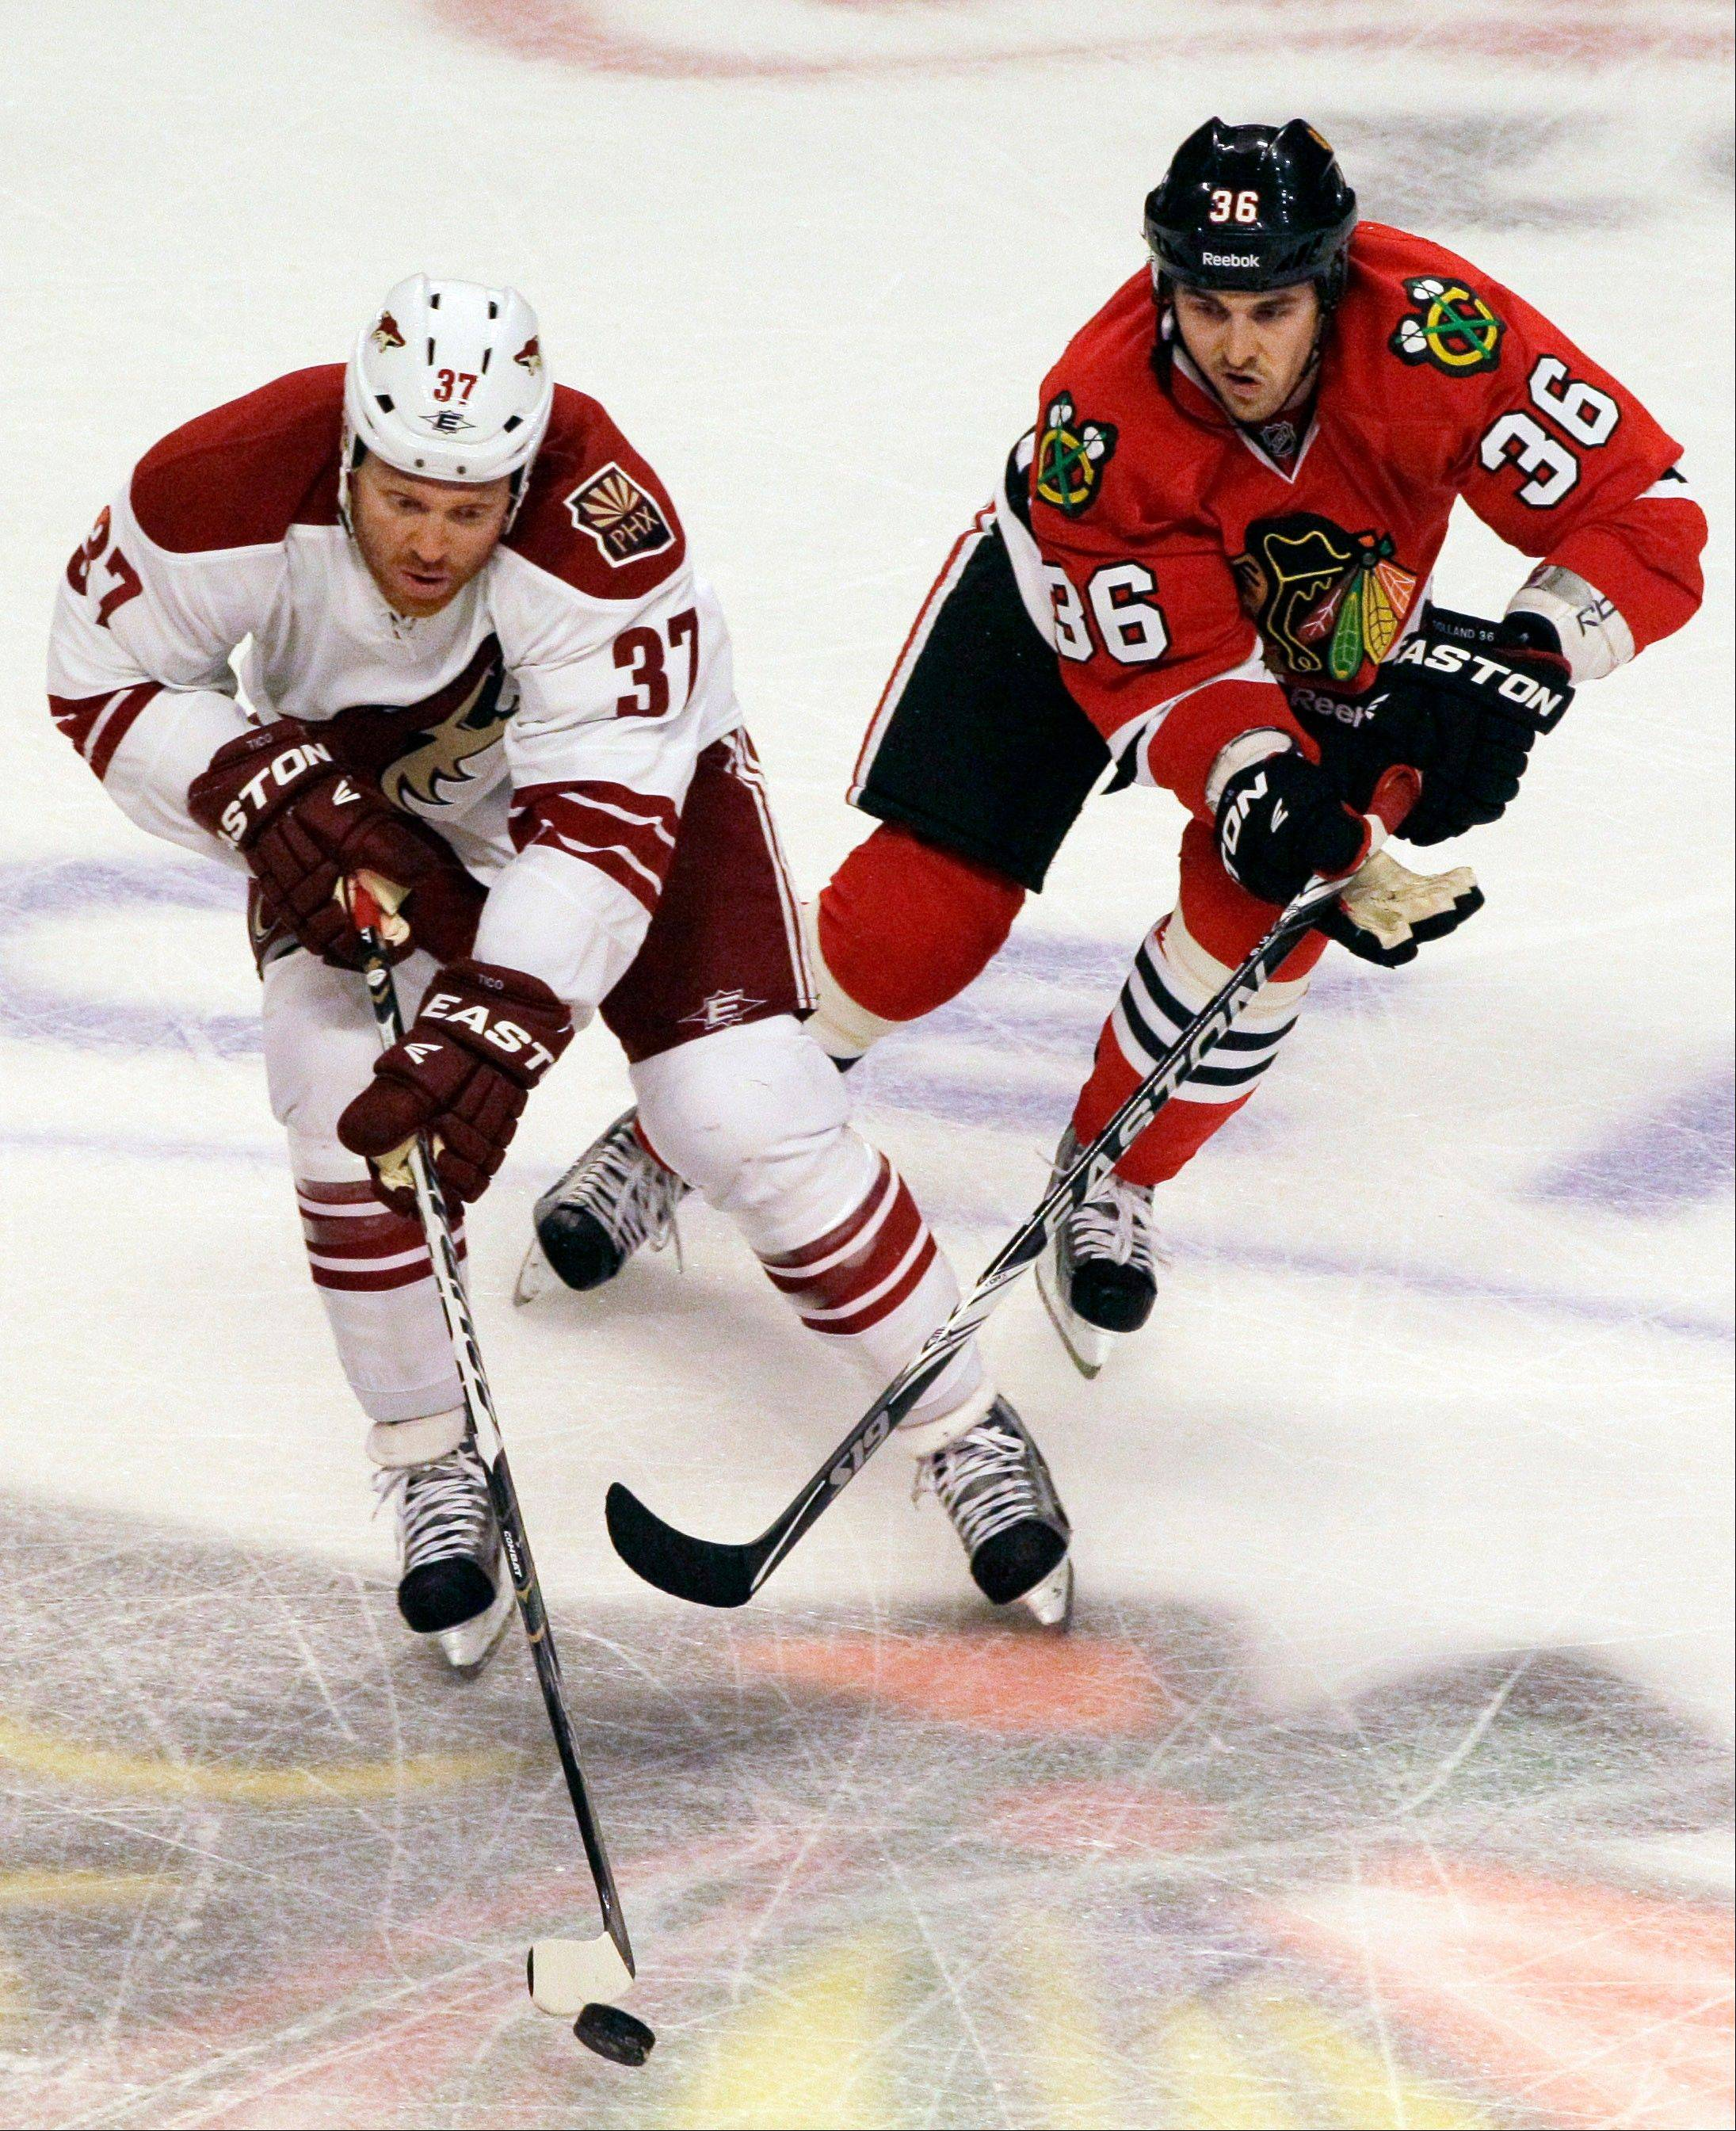 Phoenix Coyotes' Raffi Torres (37) controls the puck against Chicago Blackhawks' Dave Bolland (36) during the third period of Game 3 of an NHL hockey Stanley Cup first-round playoff series in Chicago, Tuesday, April 17, 2012. The Coyotes won 3-2.